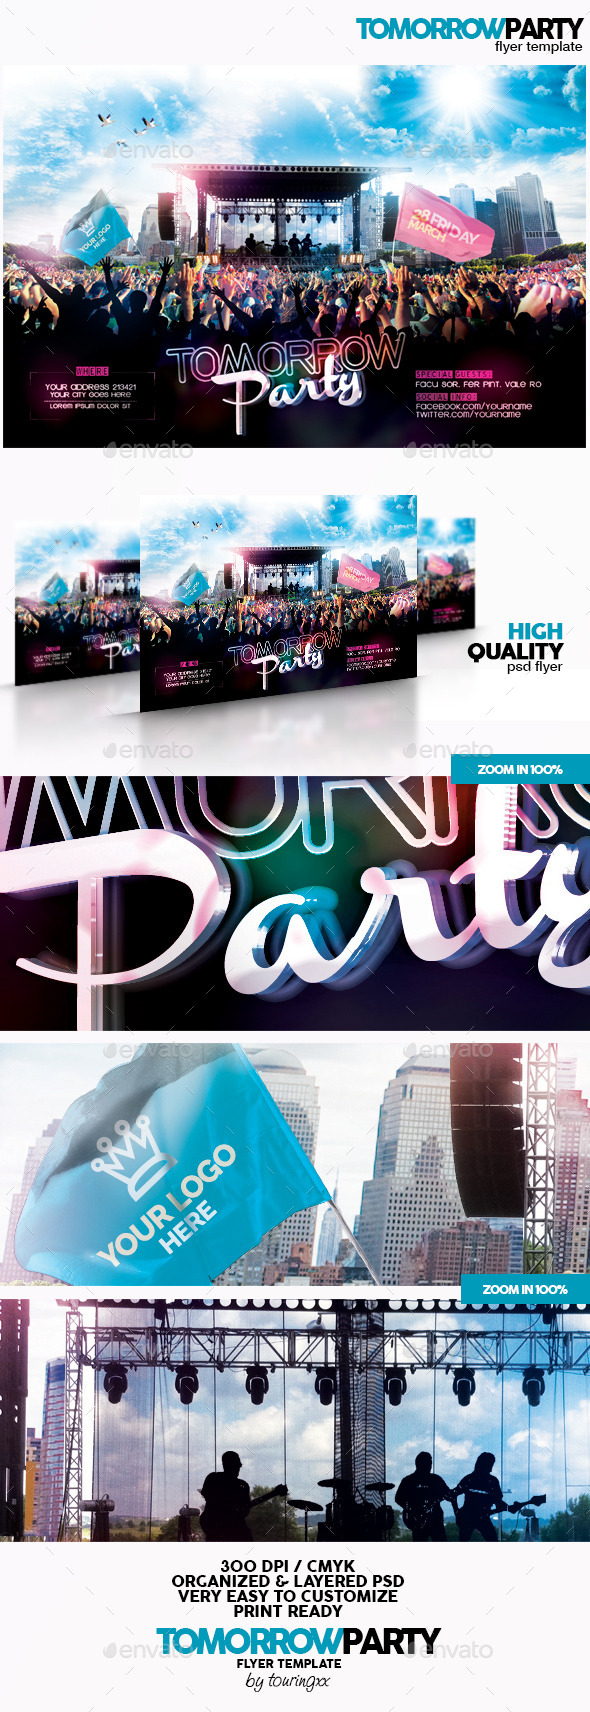 Tomorrow Party Flyer Template